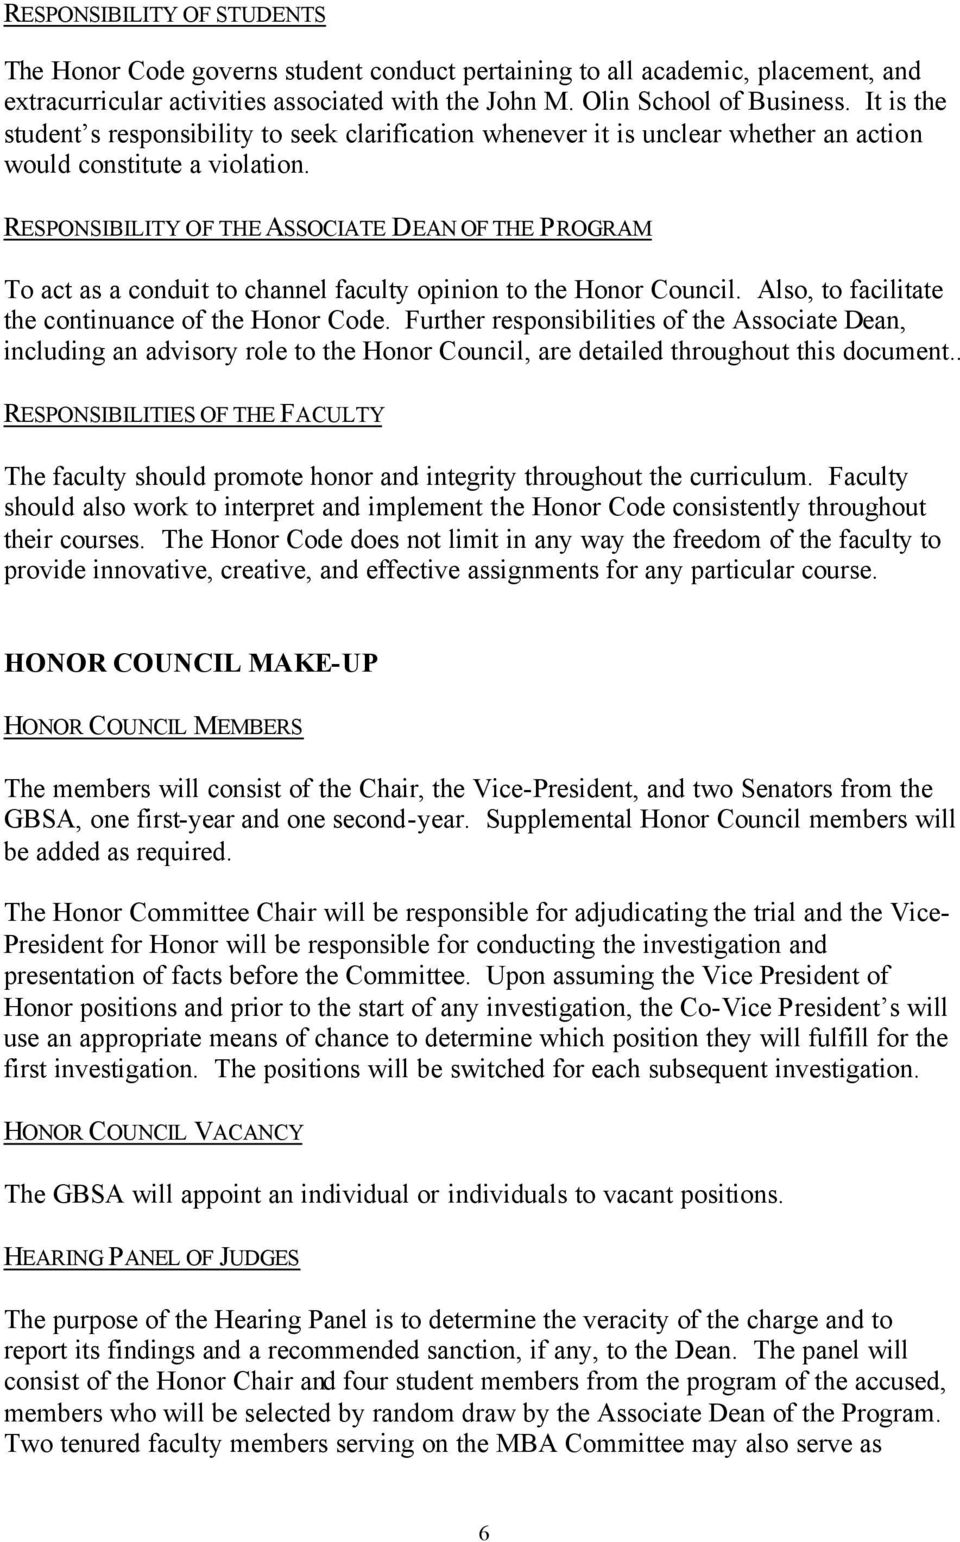 RESPONSIBILITY OF THE ASSOCIATE DEAN OF THE PROGRAM To act as a conduit to channel faculty opinion to the Honor Council. Also, to facilitate the continuance of the Honor Code.